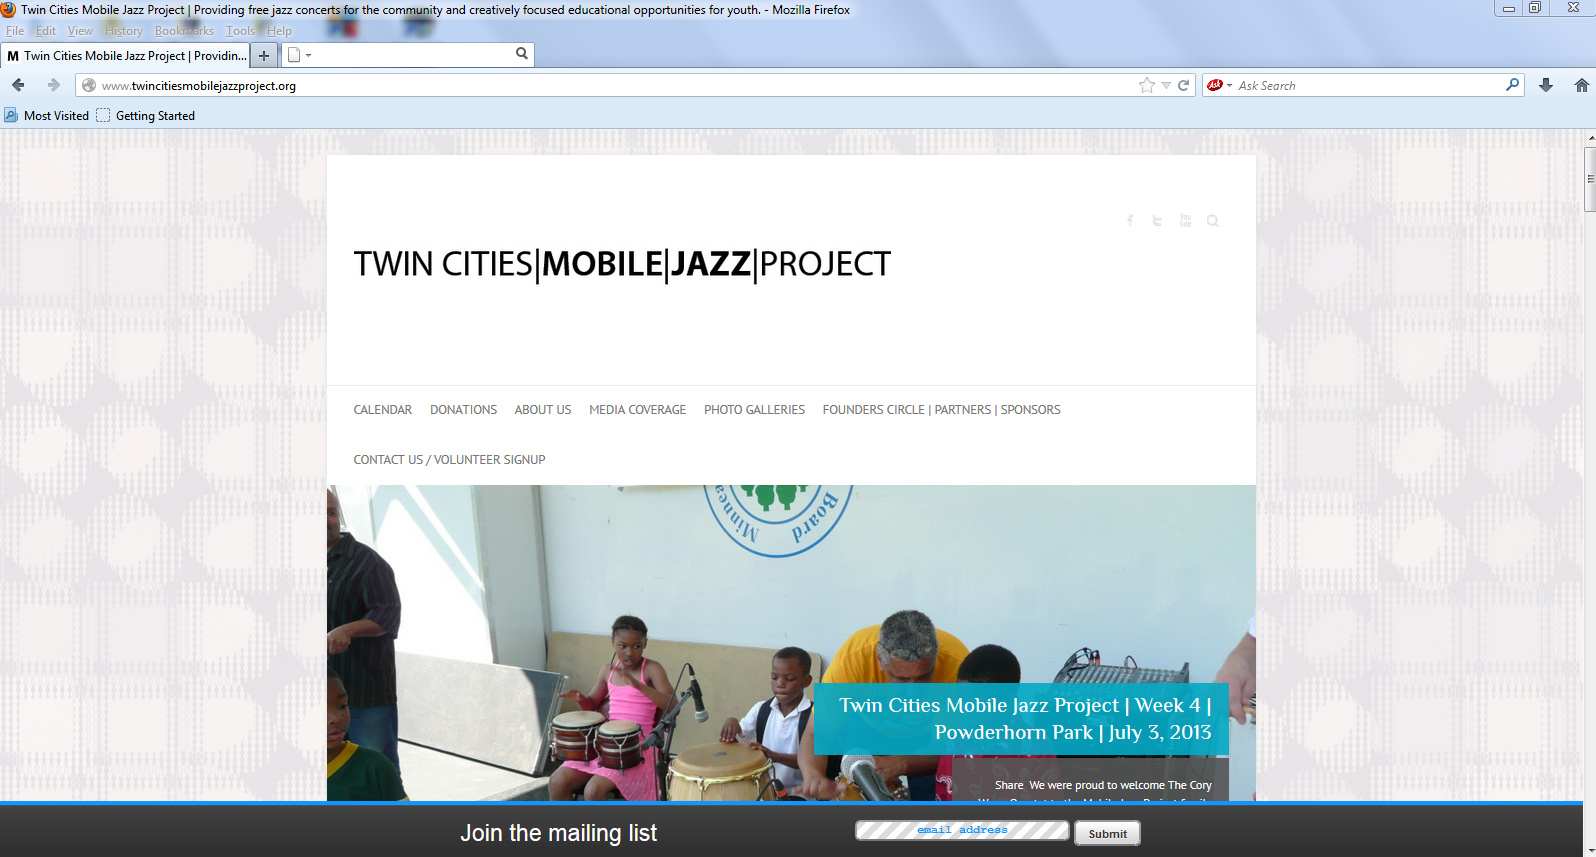 TCMJP-Website -Snapshot